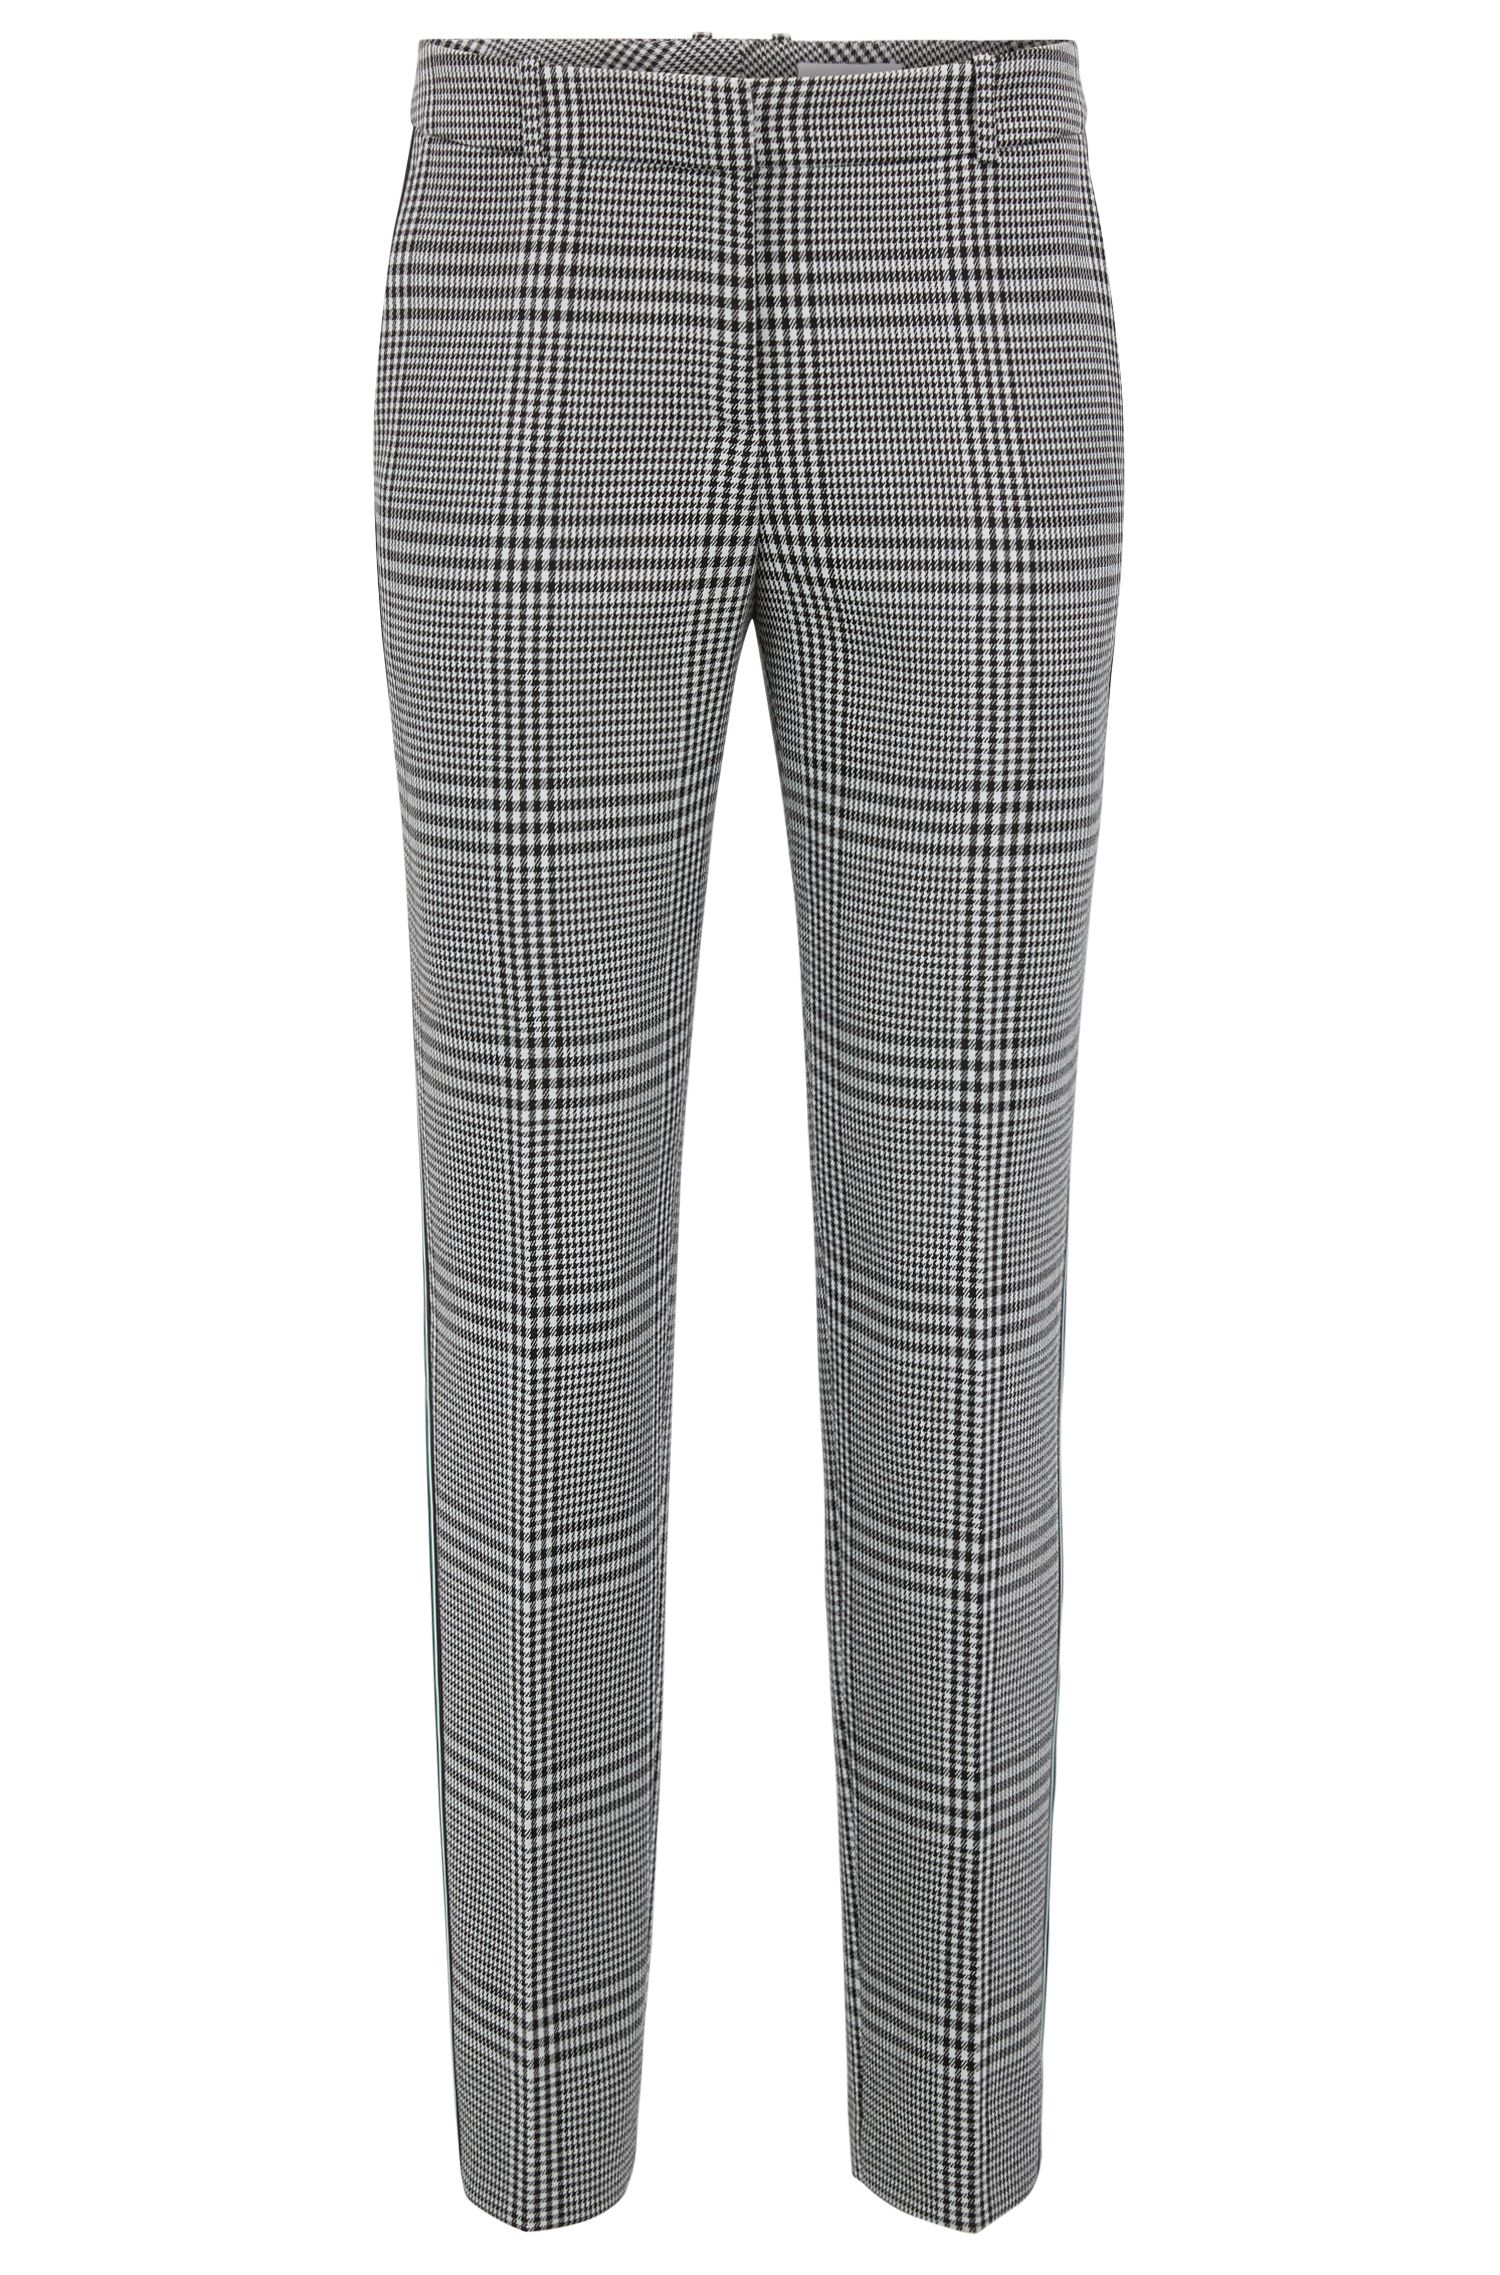 Tapered trousers in Glen-check fabric with striped taping